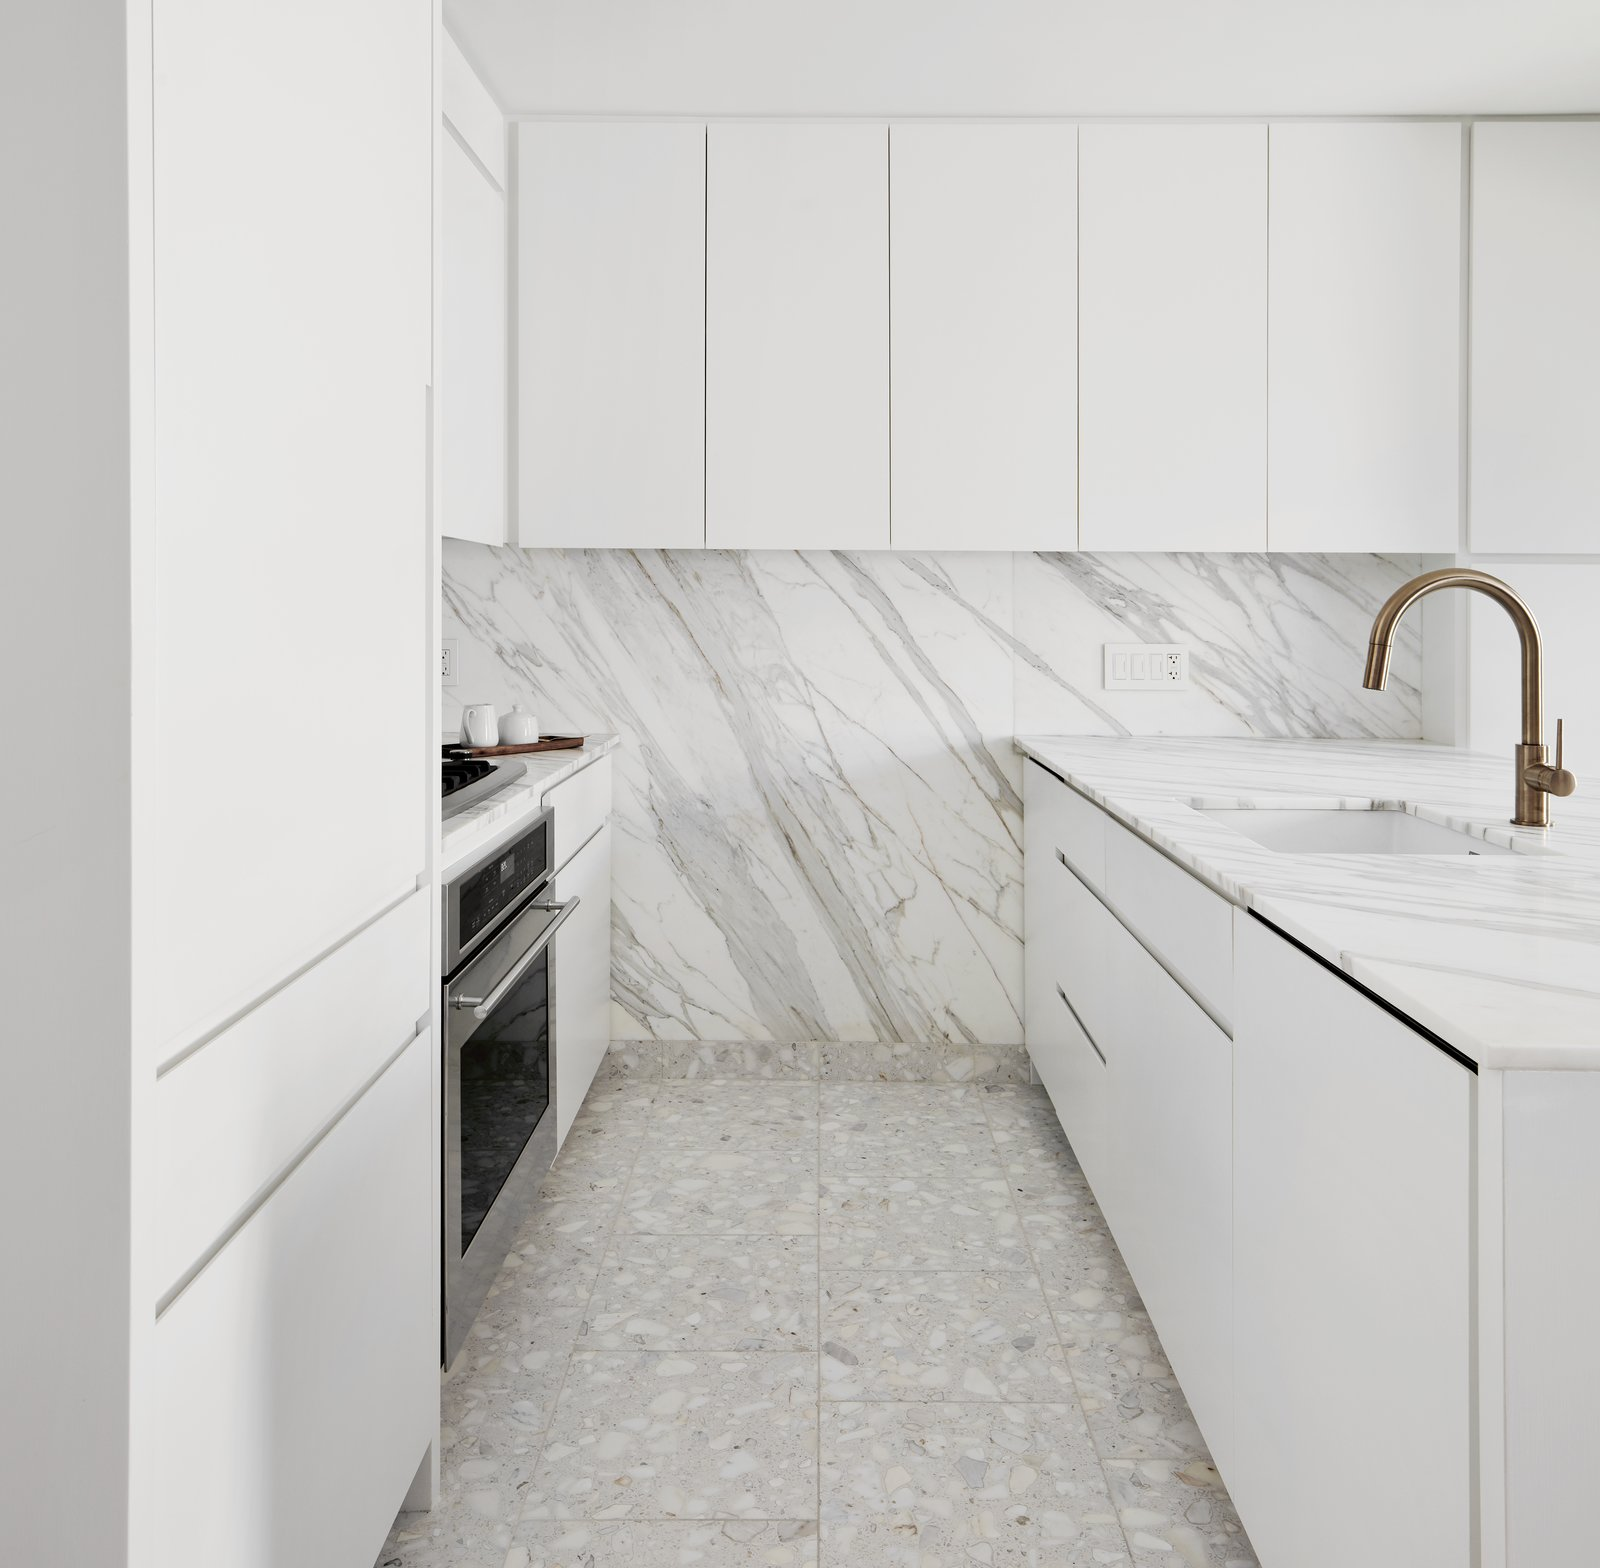 Kitchen, Cooktops, Terrazzo, White, Ceiling, Marble, Wall Oven, Marble, Undermount, and Refrigerator Terrazzo Floor / Marble Backsplash Kitchen  Kitchen Cooktops Undermount Wall Oven Marble Refrigerator Photos from Chelsea Pied-à-Terre